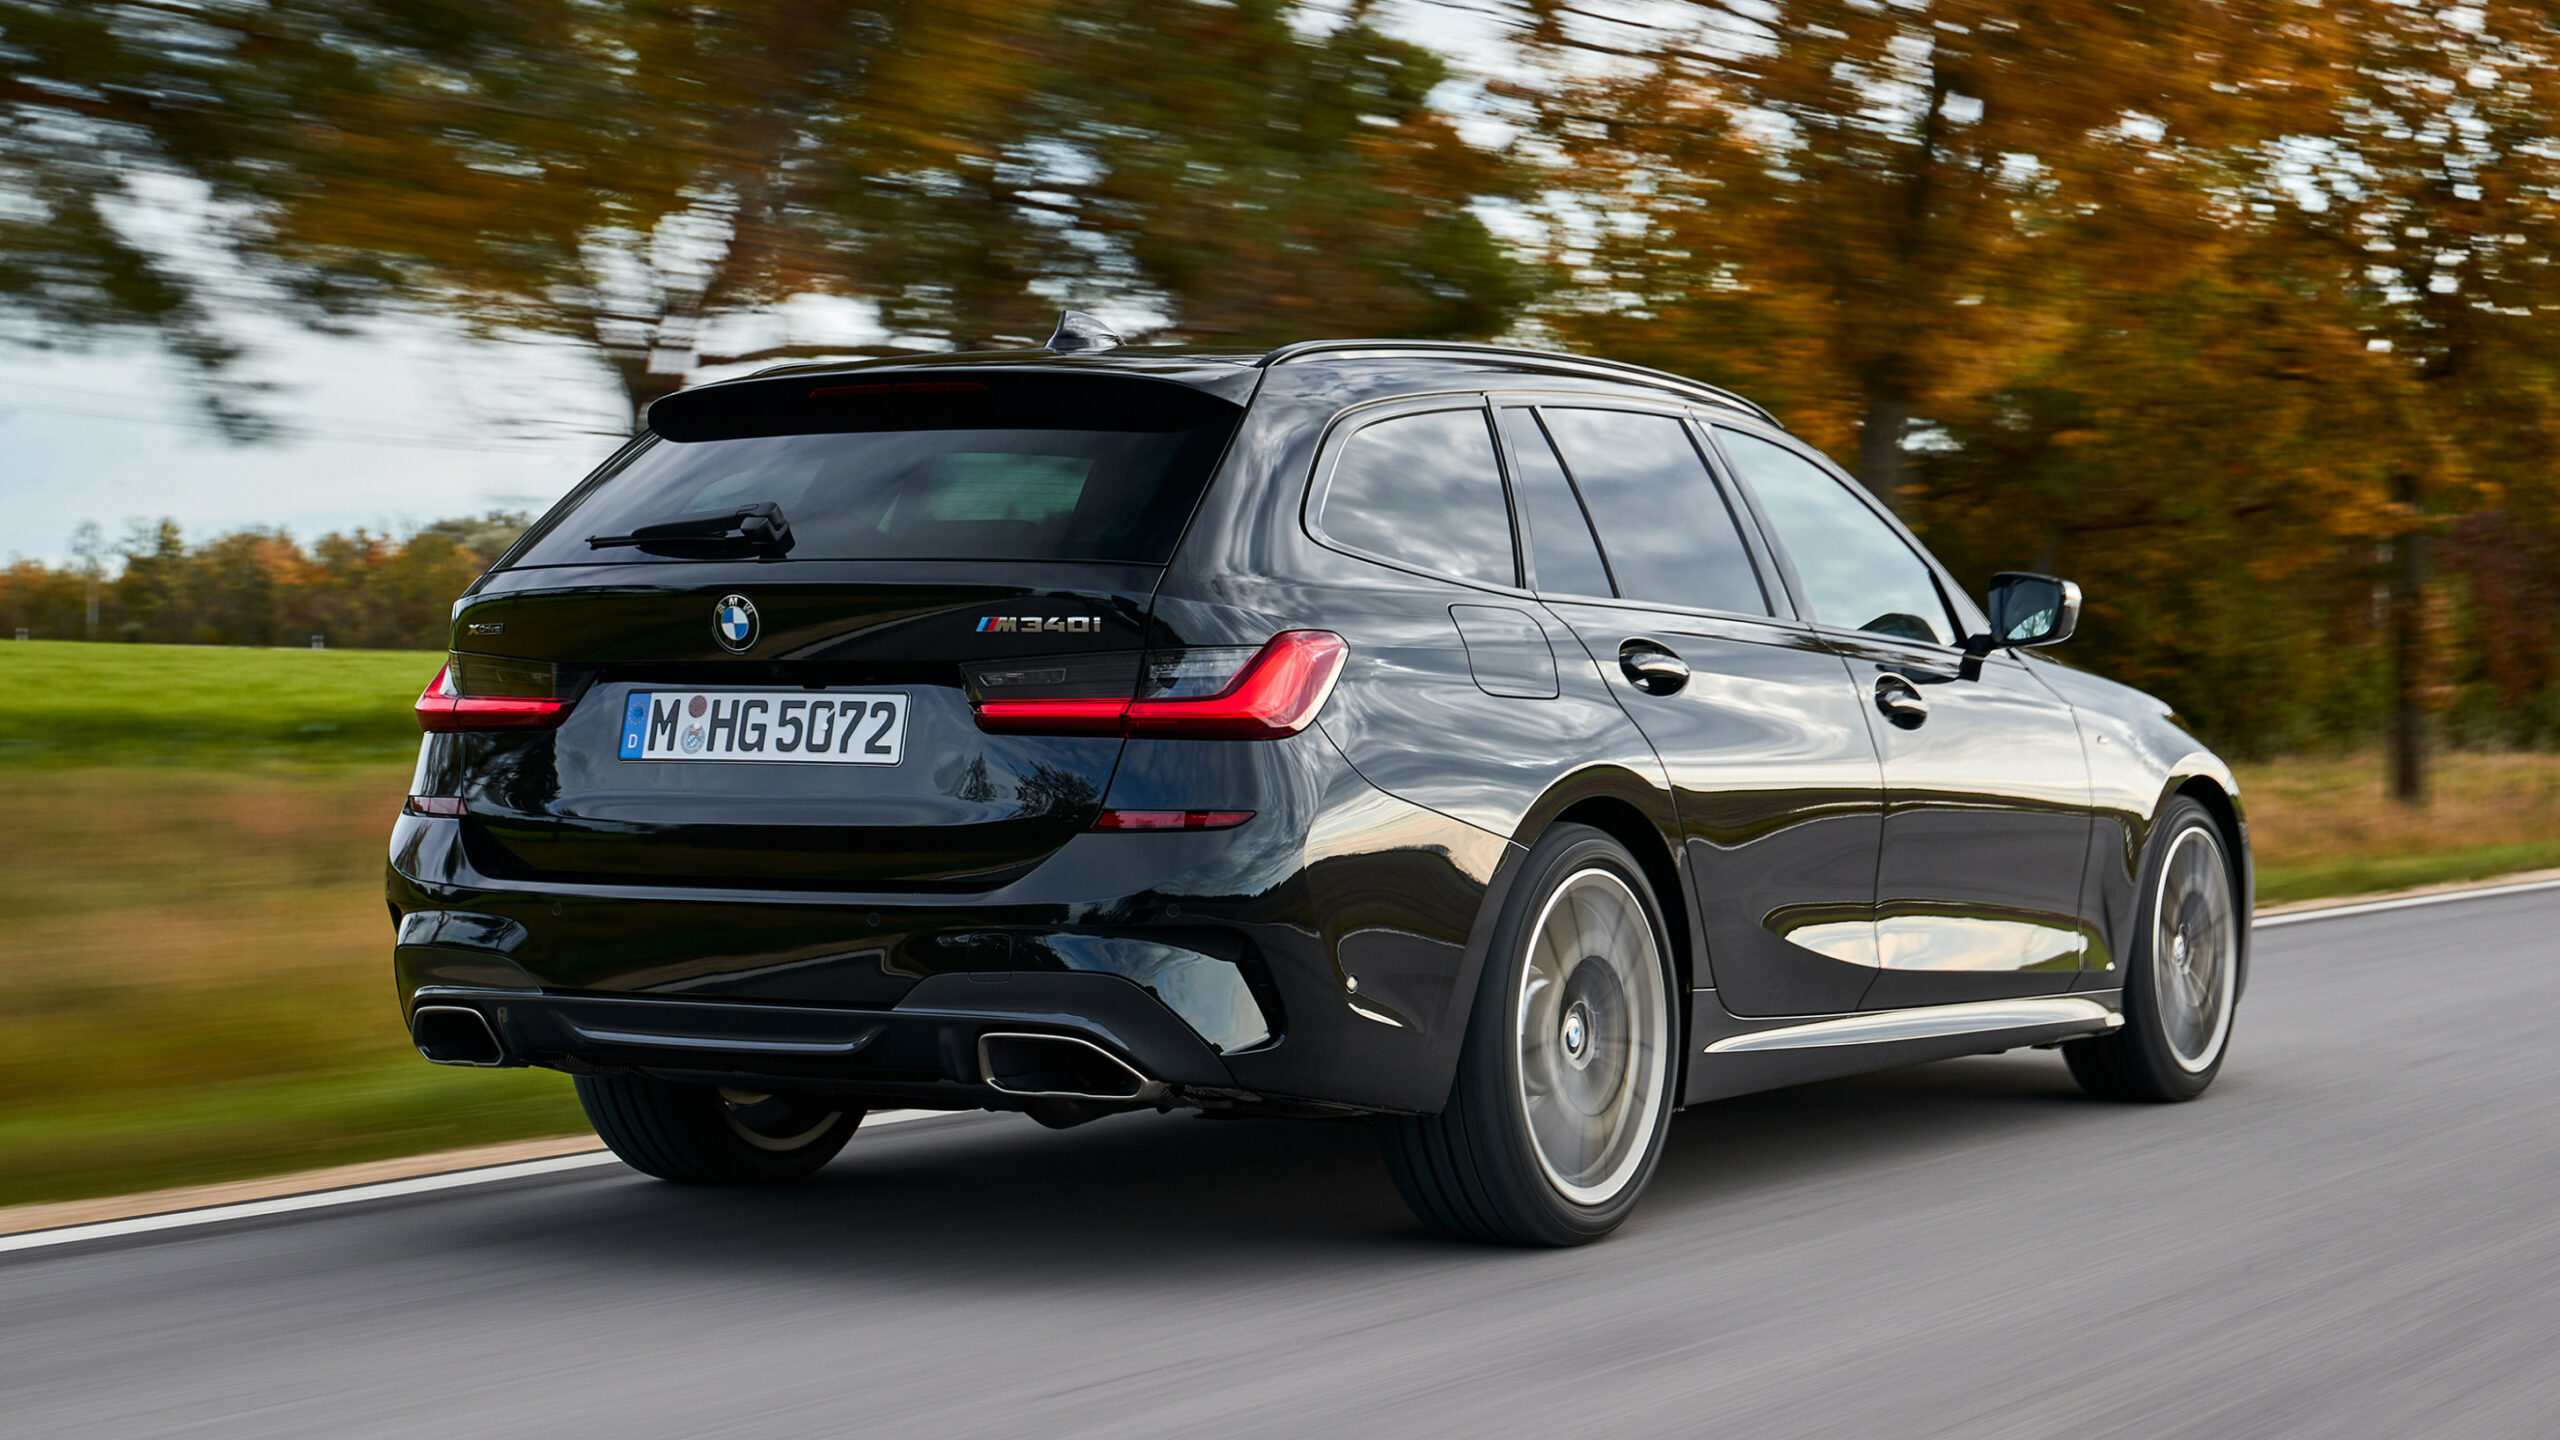 BMW M7i Touring review: peak 7 Series? | Top Gear